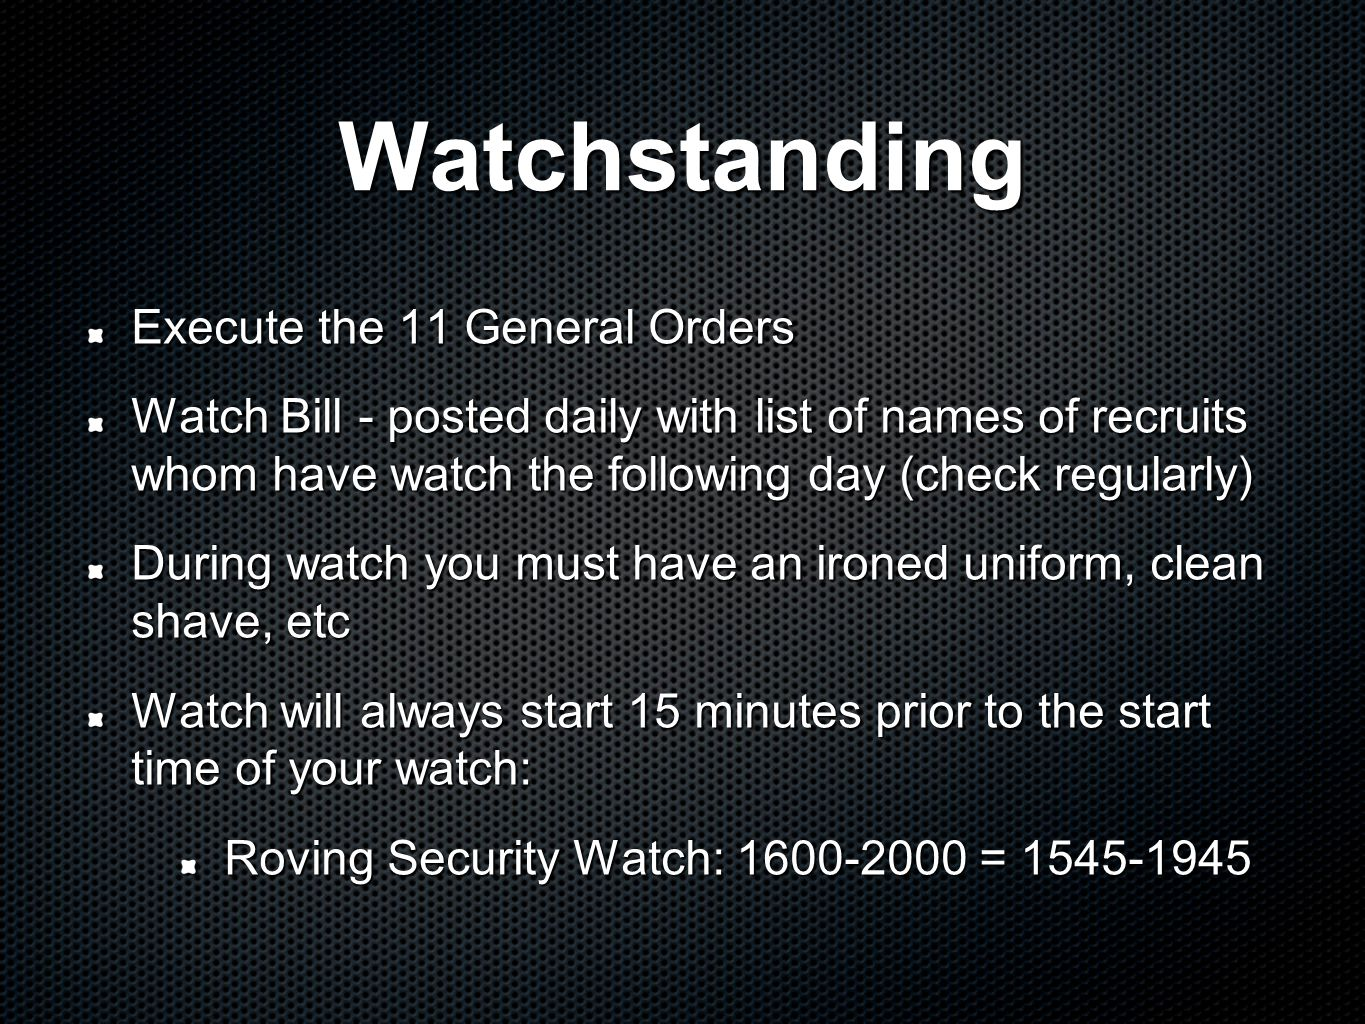 Watchstanding Execute the 11 General Orders Watch Bill - posted daily with list of names of recruits whom have watch the following day (check regularl